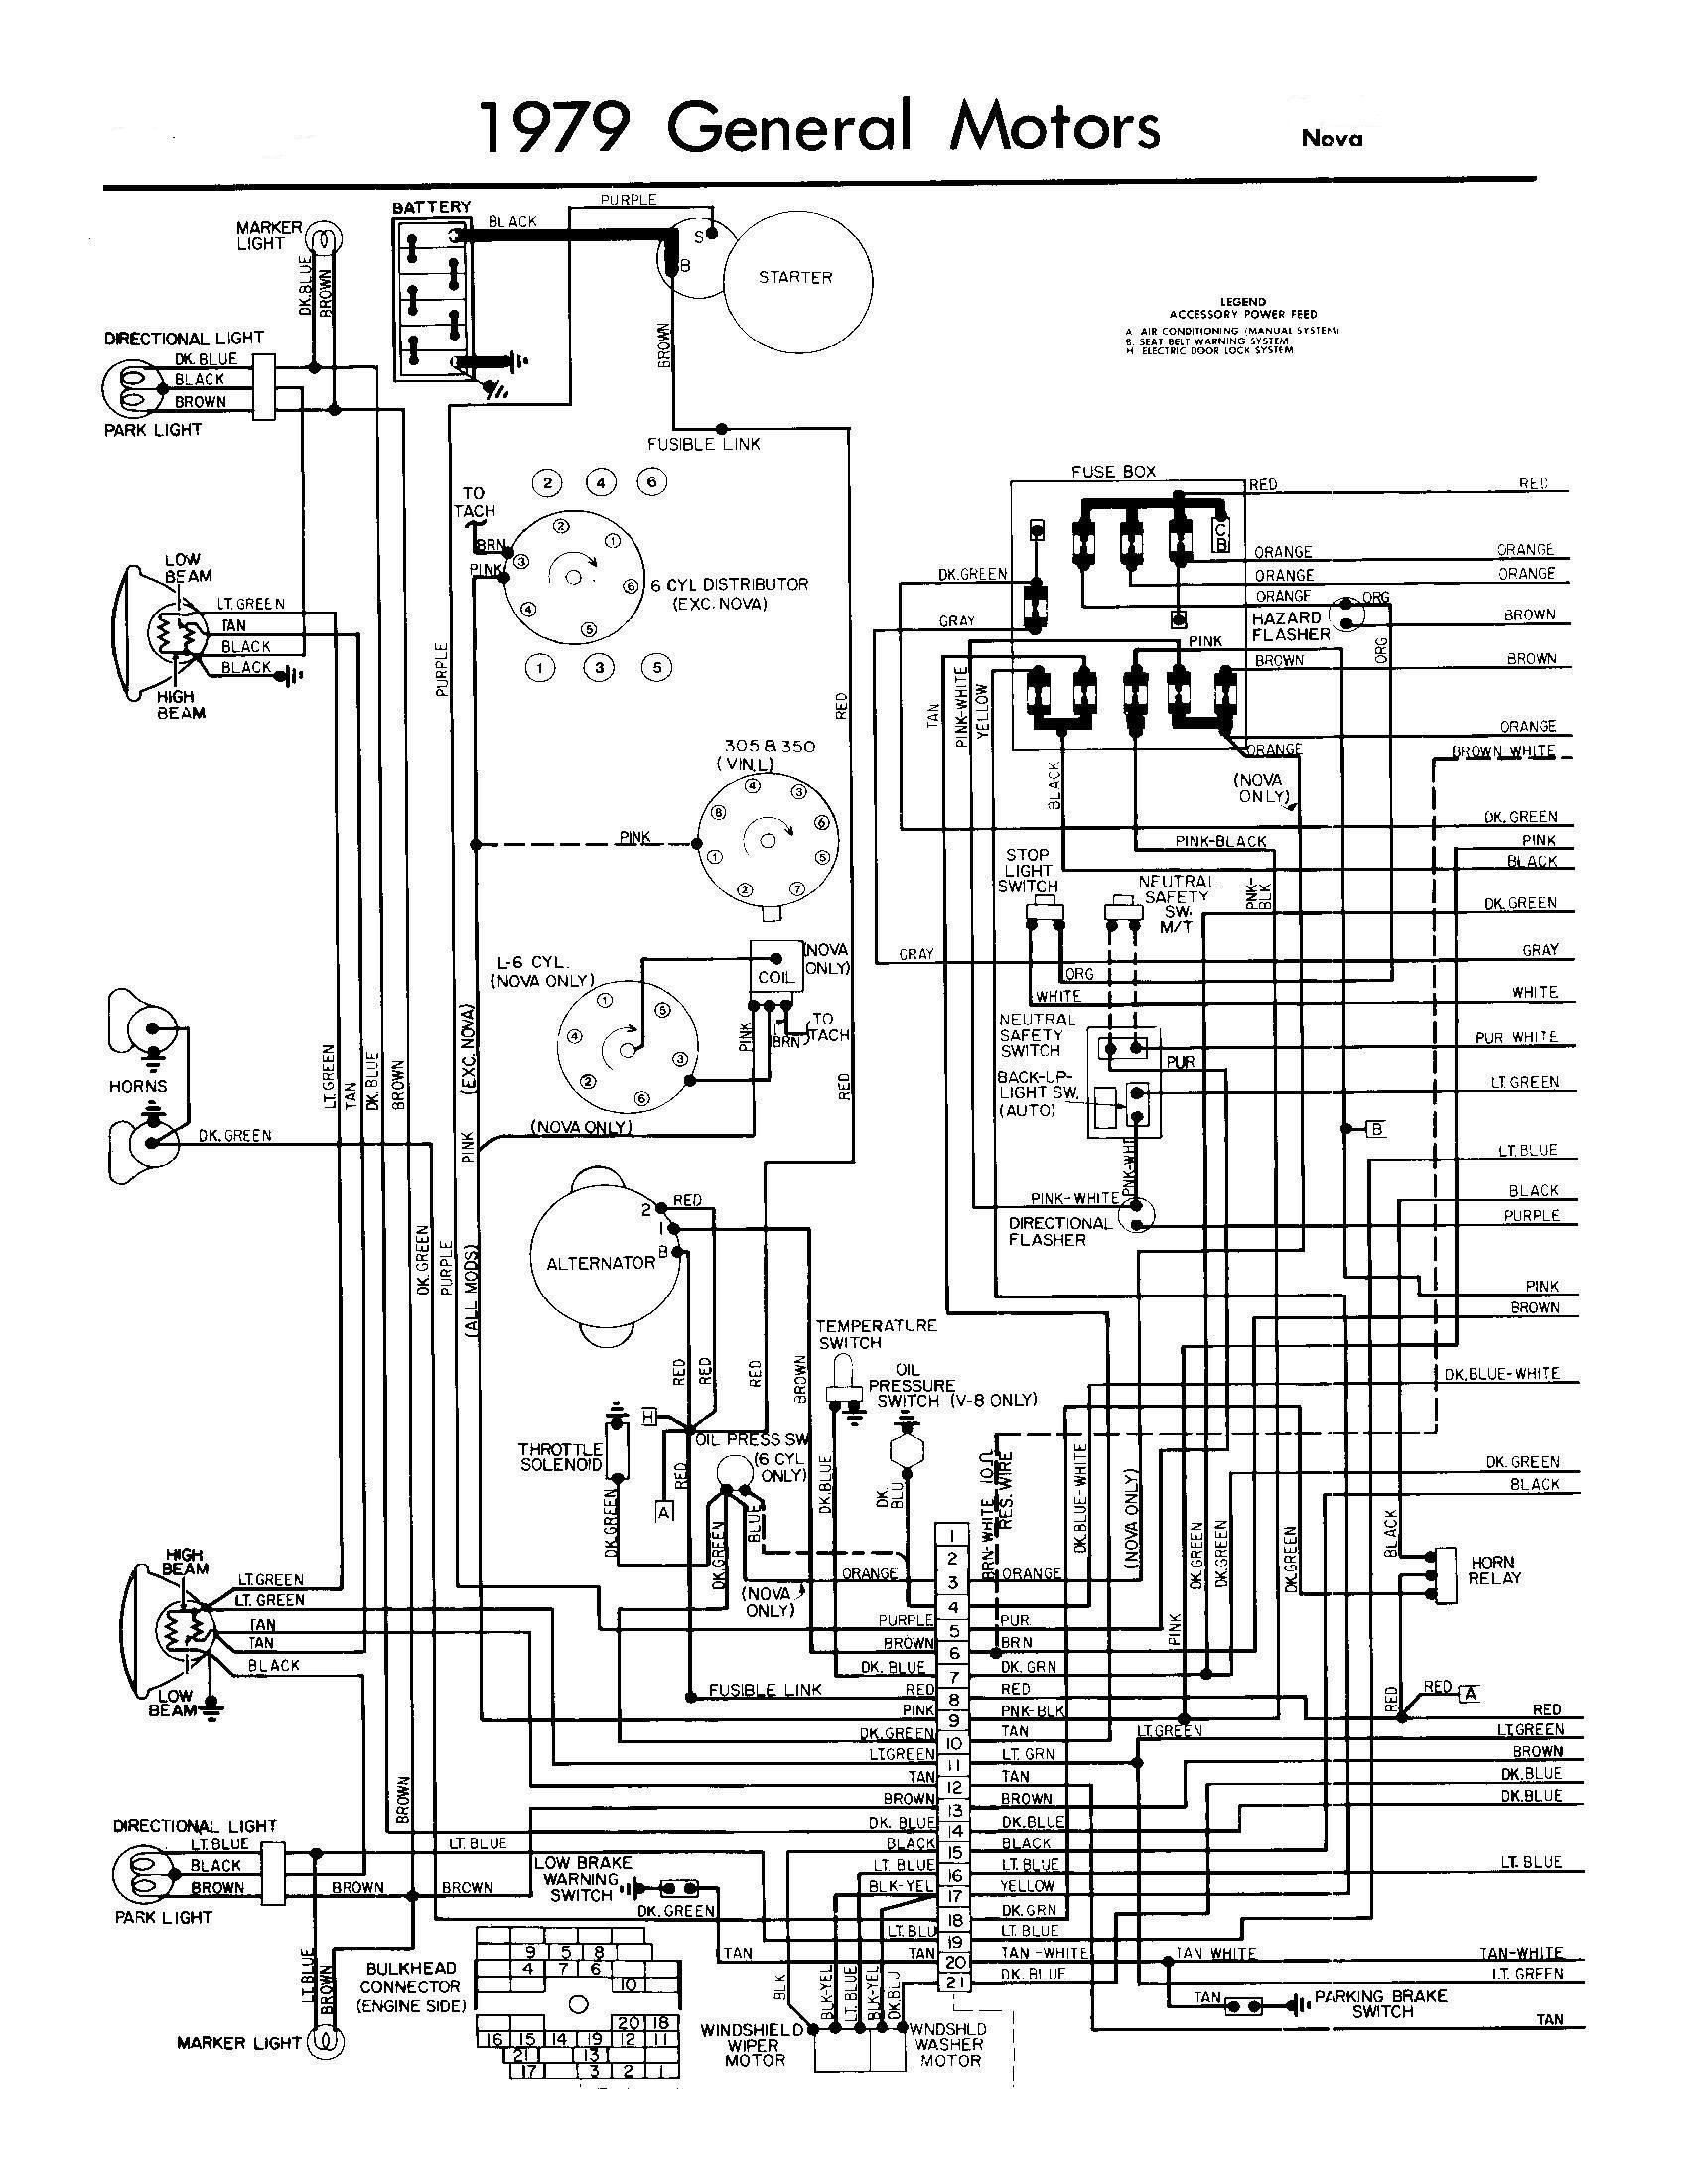 Truck Air System Diagram All Generation Wiring Schematics Chevy Nova forum Of Truck Air System Diagram